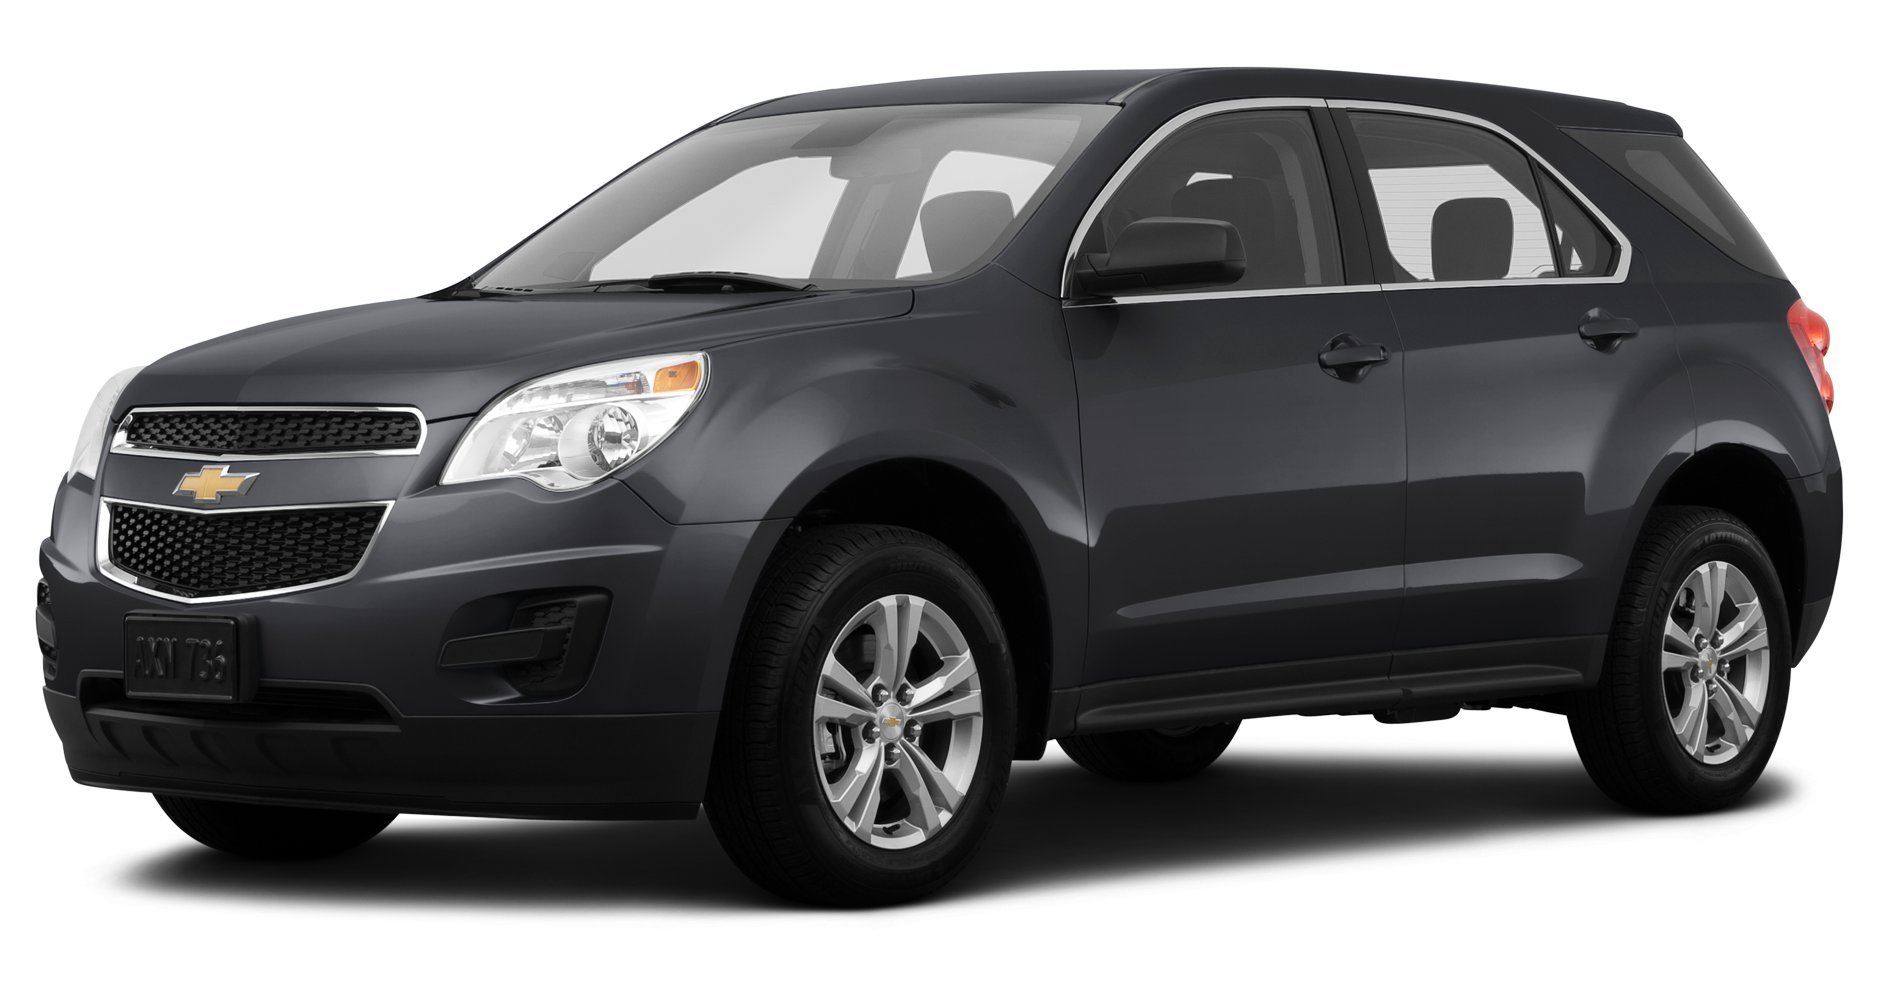 All Chevy 2014 chevrolet suv : Amazon.com: 2014 Chevrolet Equinox Reviews, Images, and Specs ...